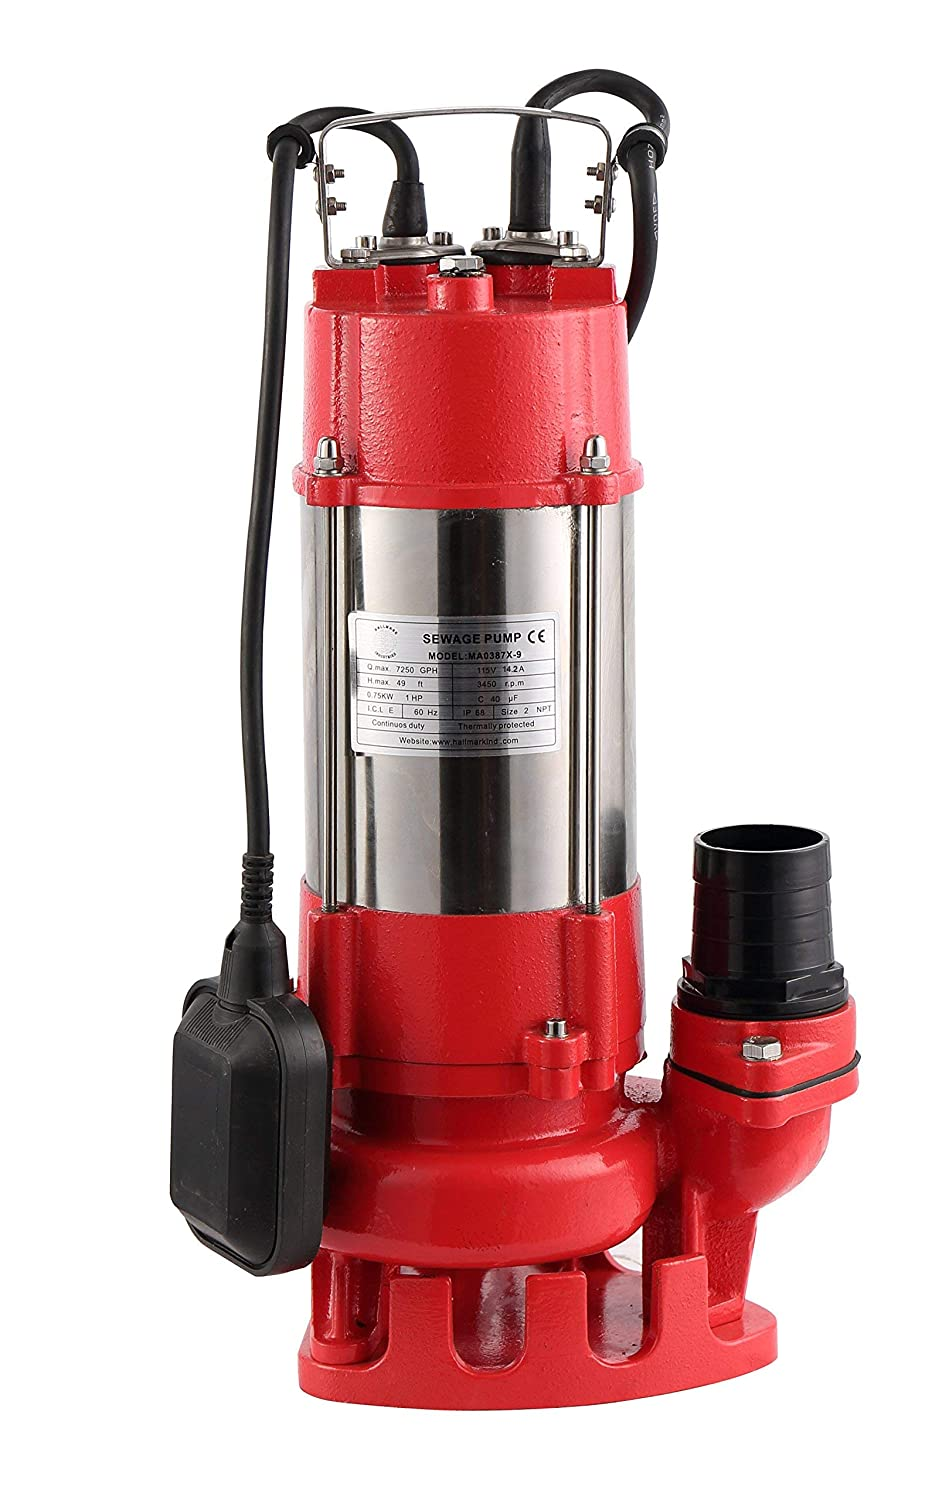 3//4HP 20 Cable 115V Max 5600 GPH 38 Lift Heavy Duty stainless steel Hallmark Industries MA0387X-8 Sewage Pump